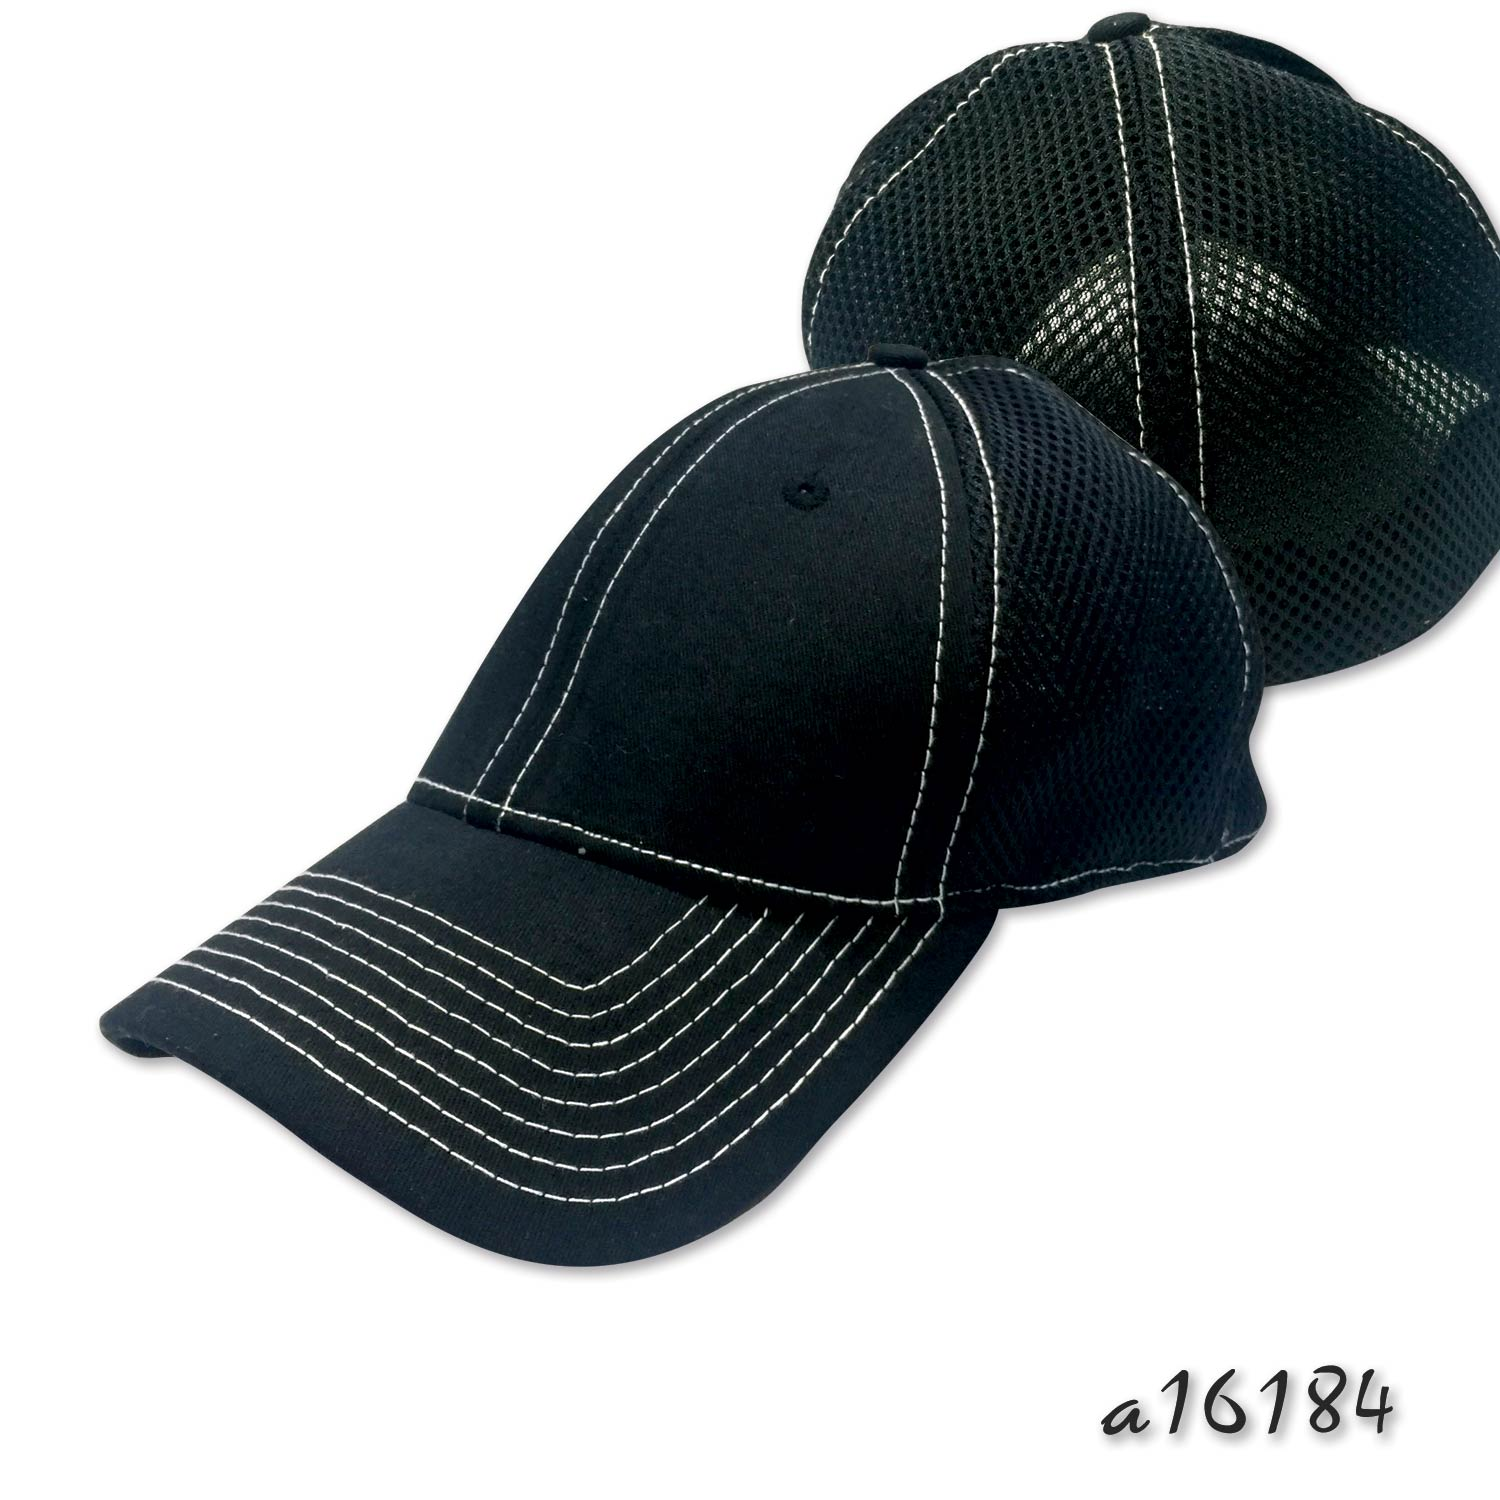 Sandwich mesh cap with contrast stitches